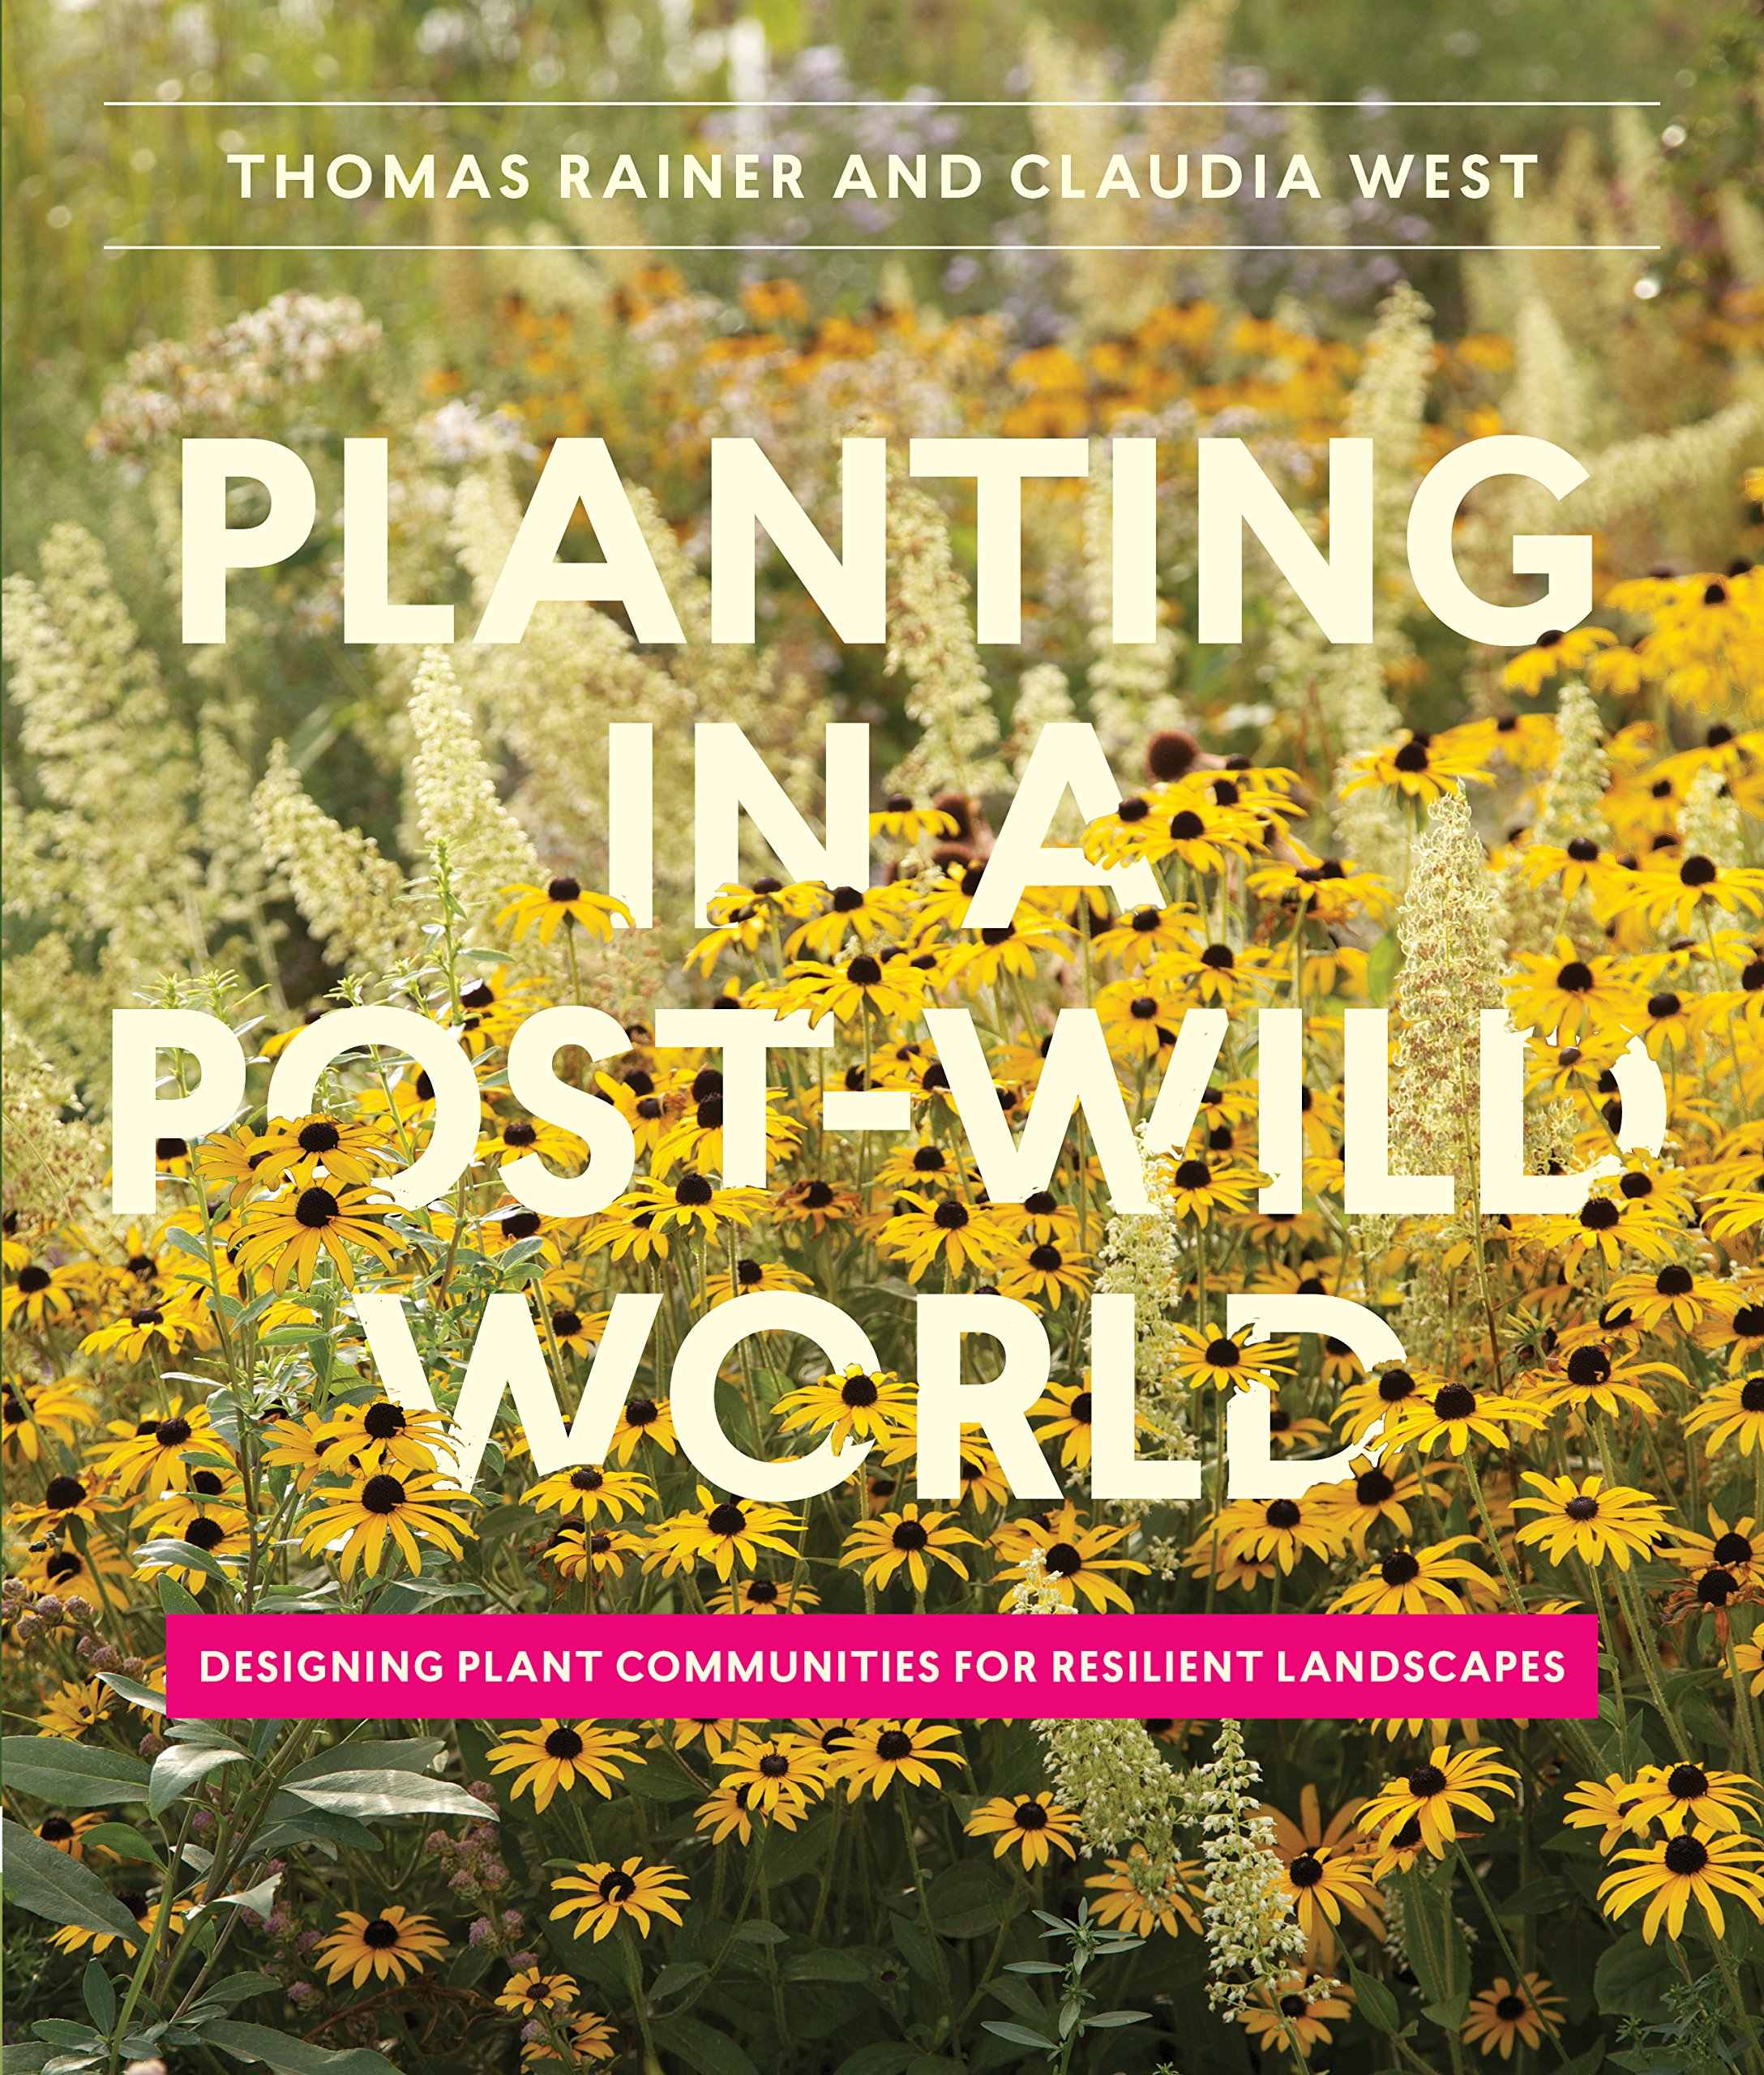 Planting in a Post-wild World ISBN-13 9781604695533